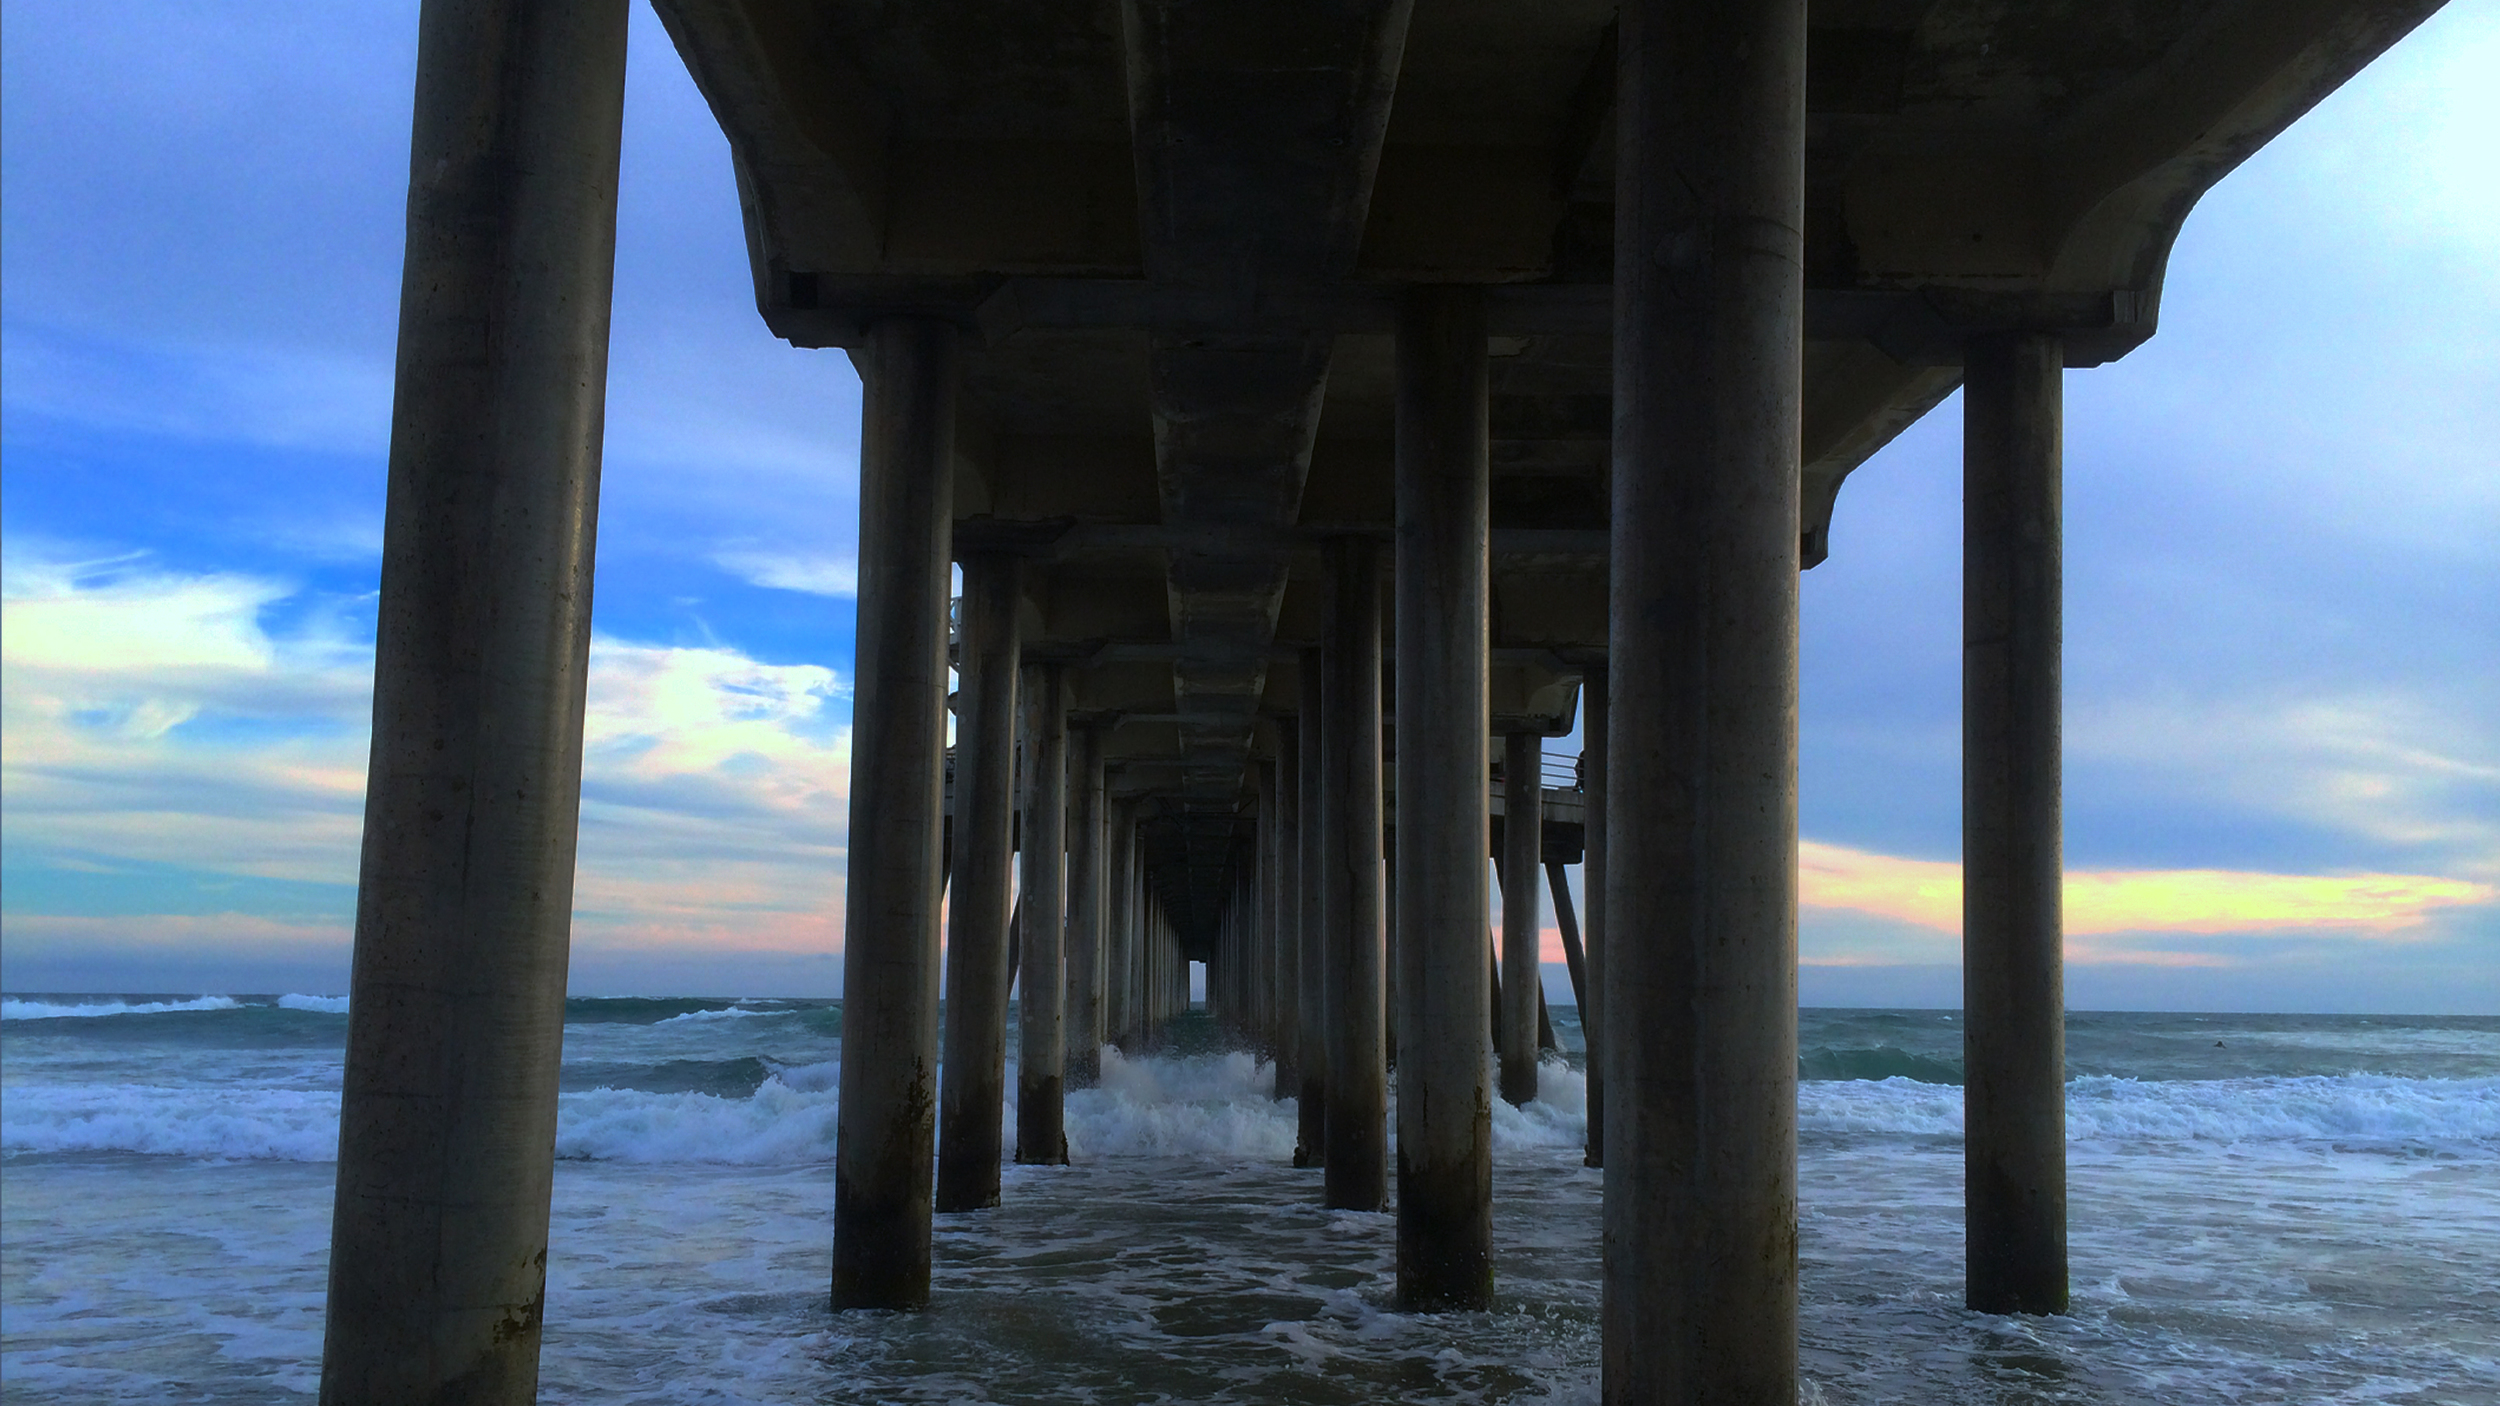 The Huntington Beach Pier